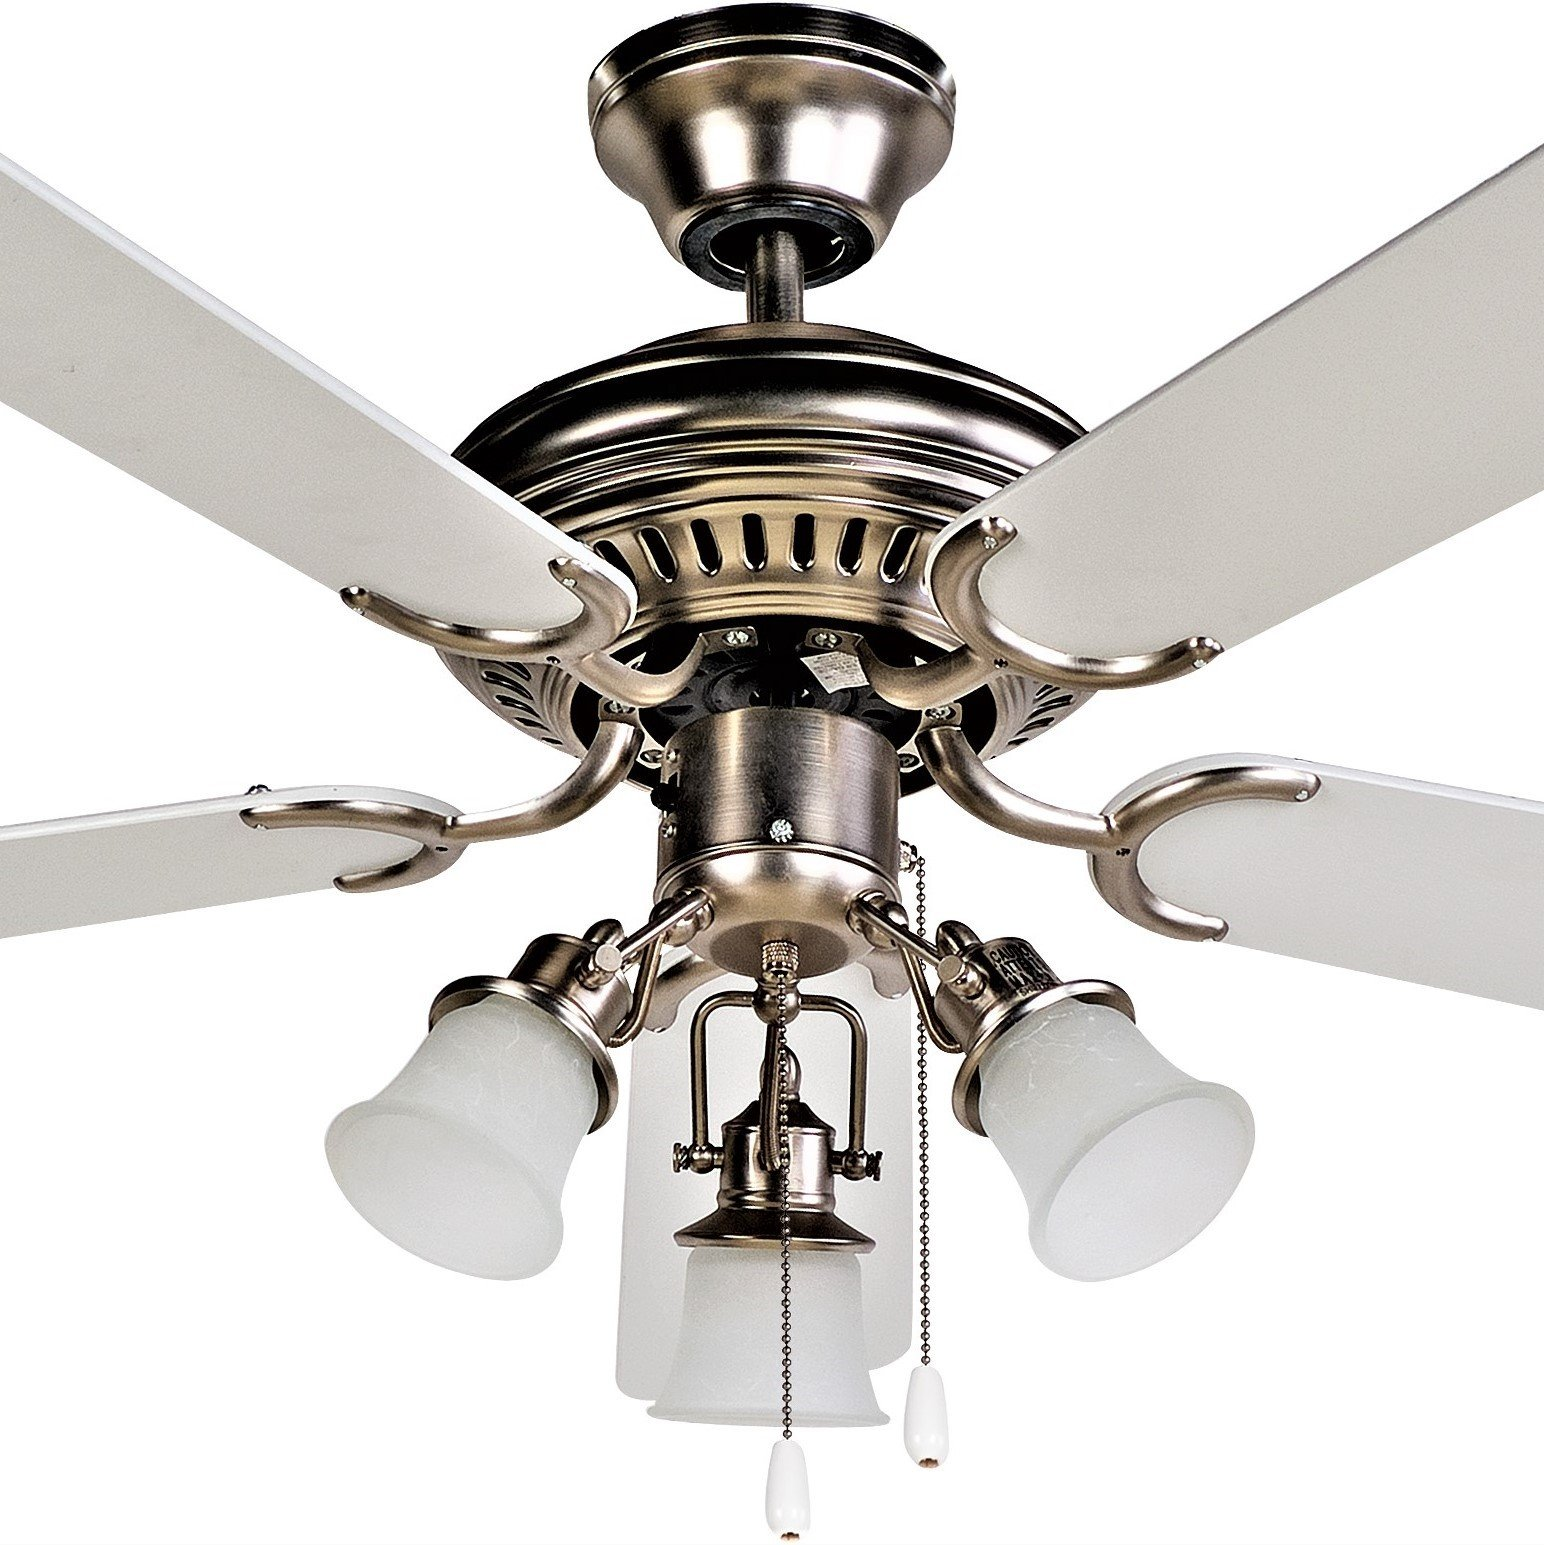 FJ- WORLD L42019 Beautiful white ceiling fan with 42'' blades,3 lights and free remote by FJ WORLD